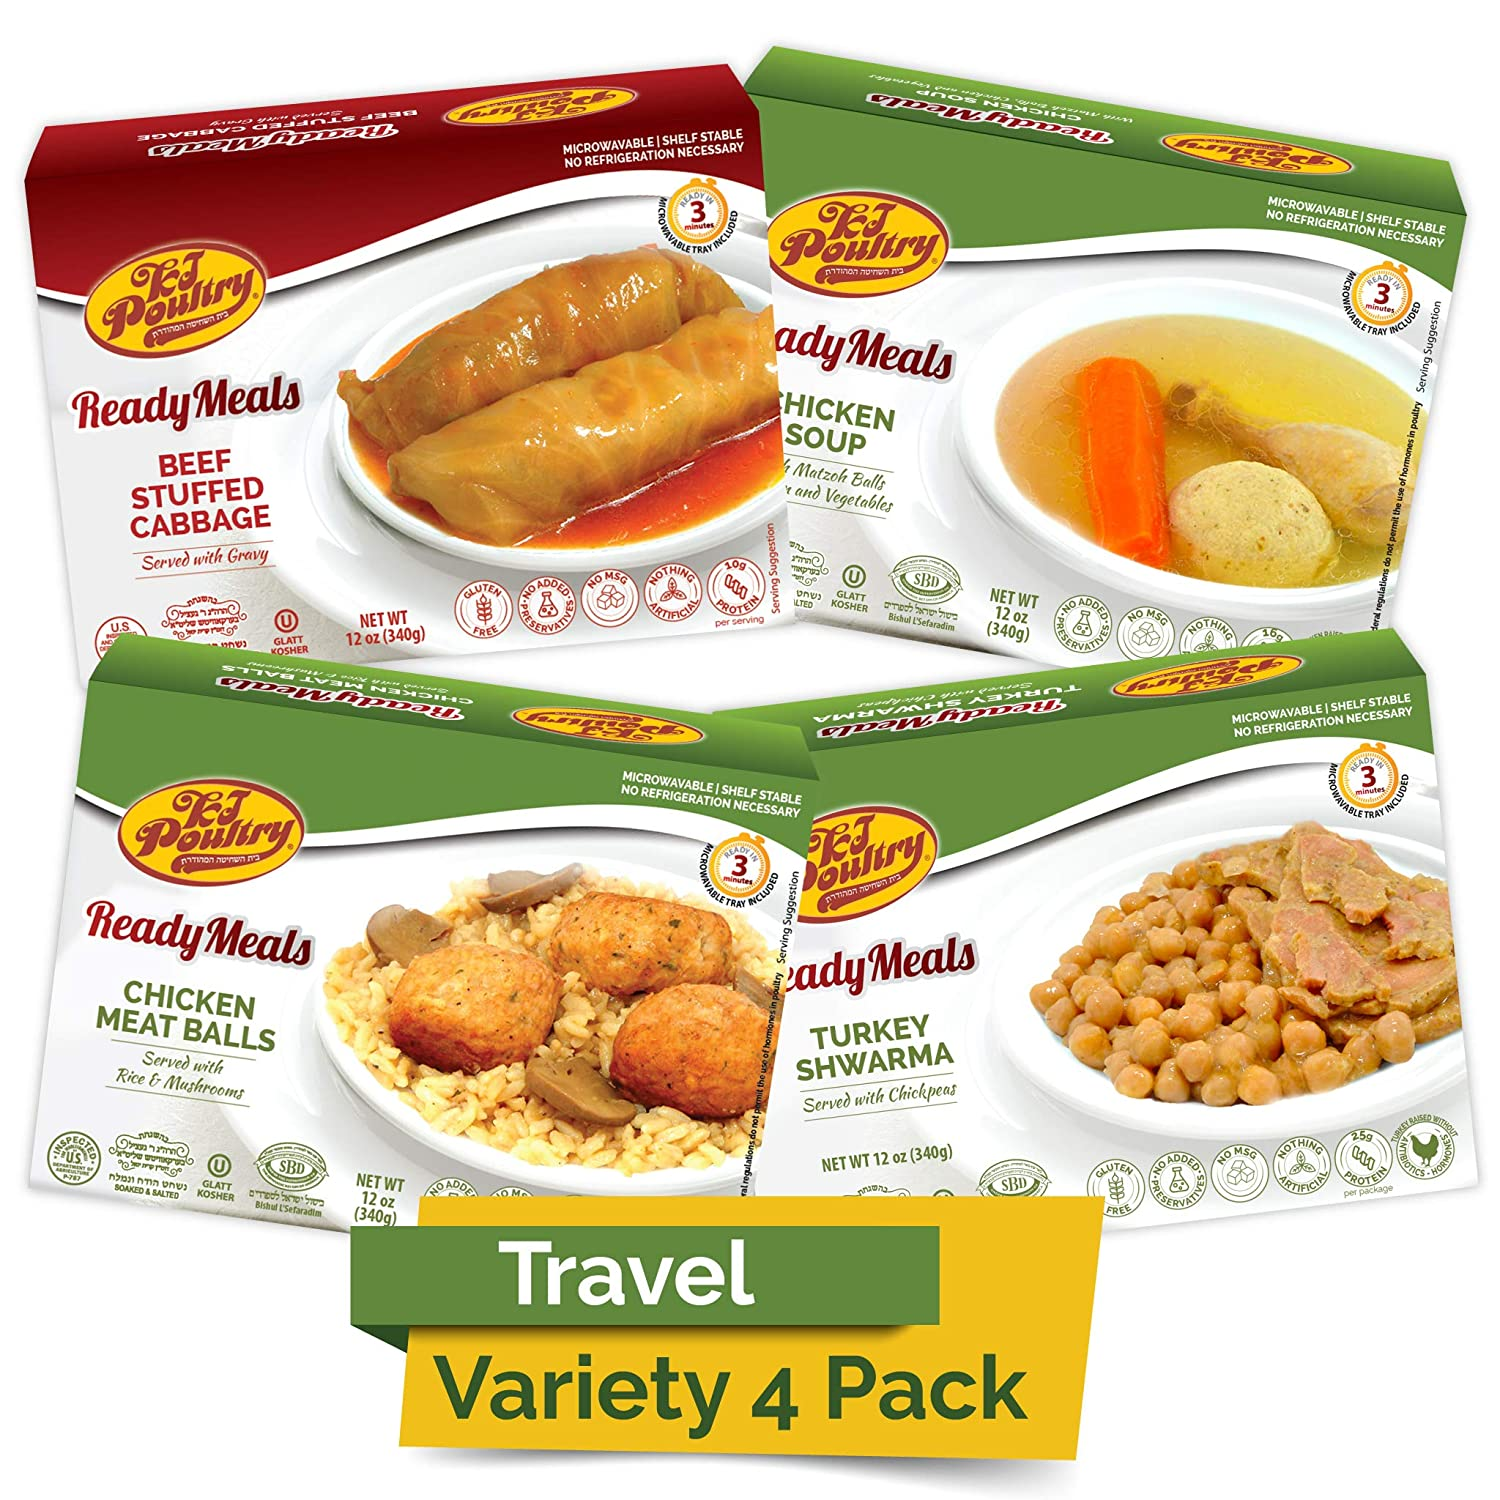 Kosher MRE Meat Meals Ready to Eat (4 Pack Variety - Beef & Turkey) - Prepared Entree Fully Cooked, Shelf Stable Microwave Dinner – Travel, Military, Camping, Emergency Survival Protein Food Supply